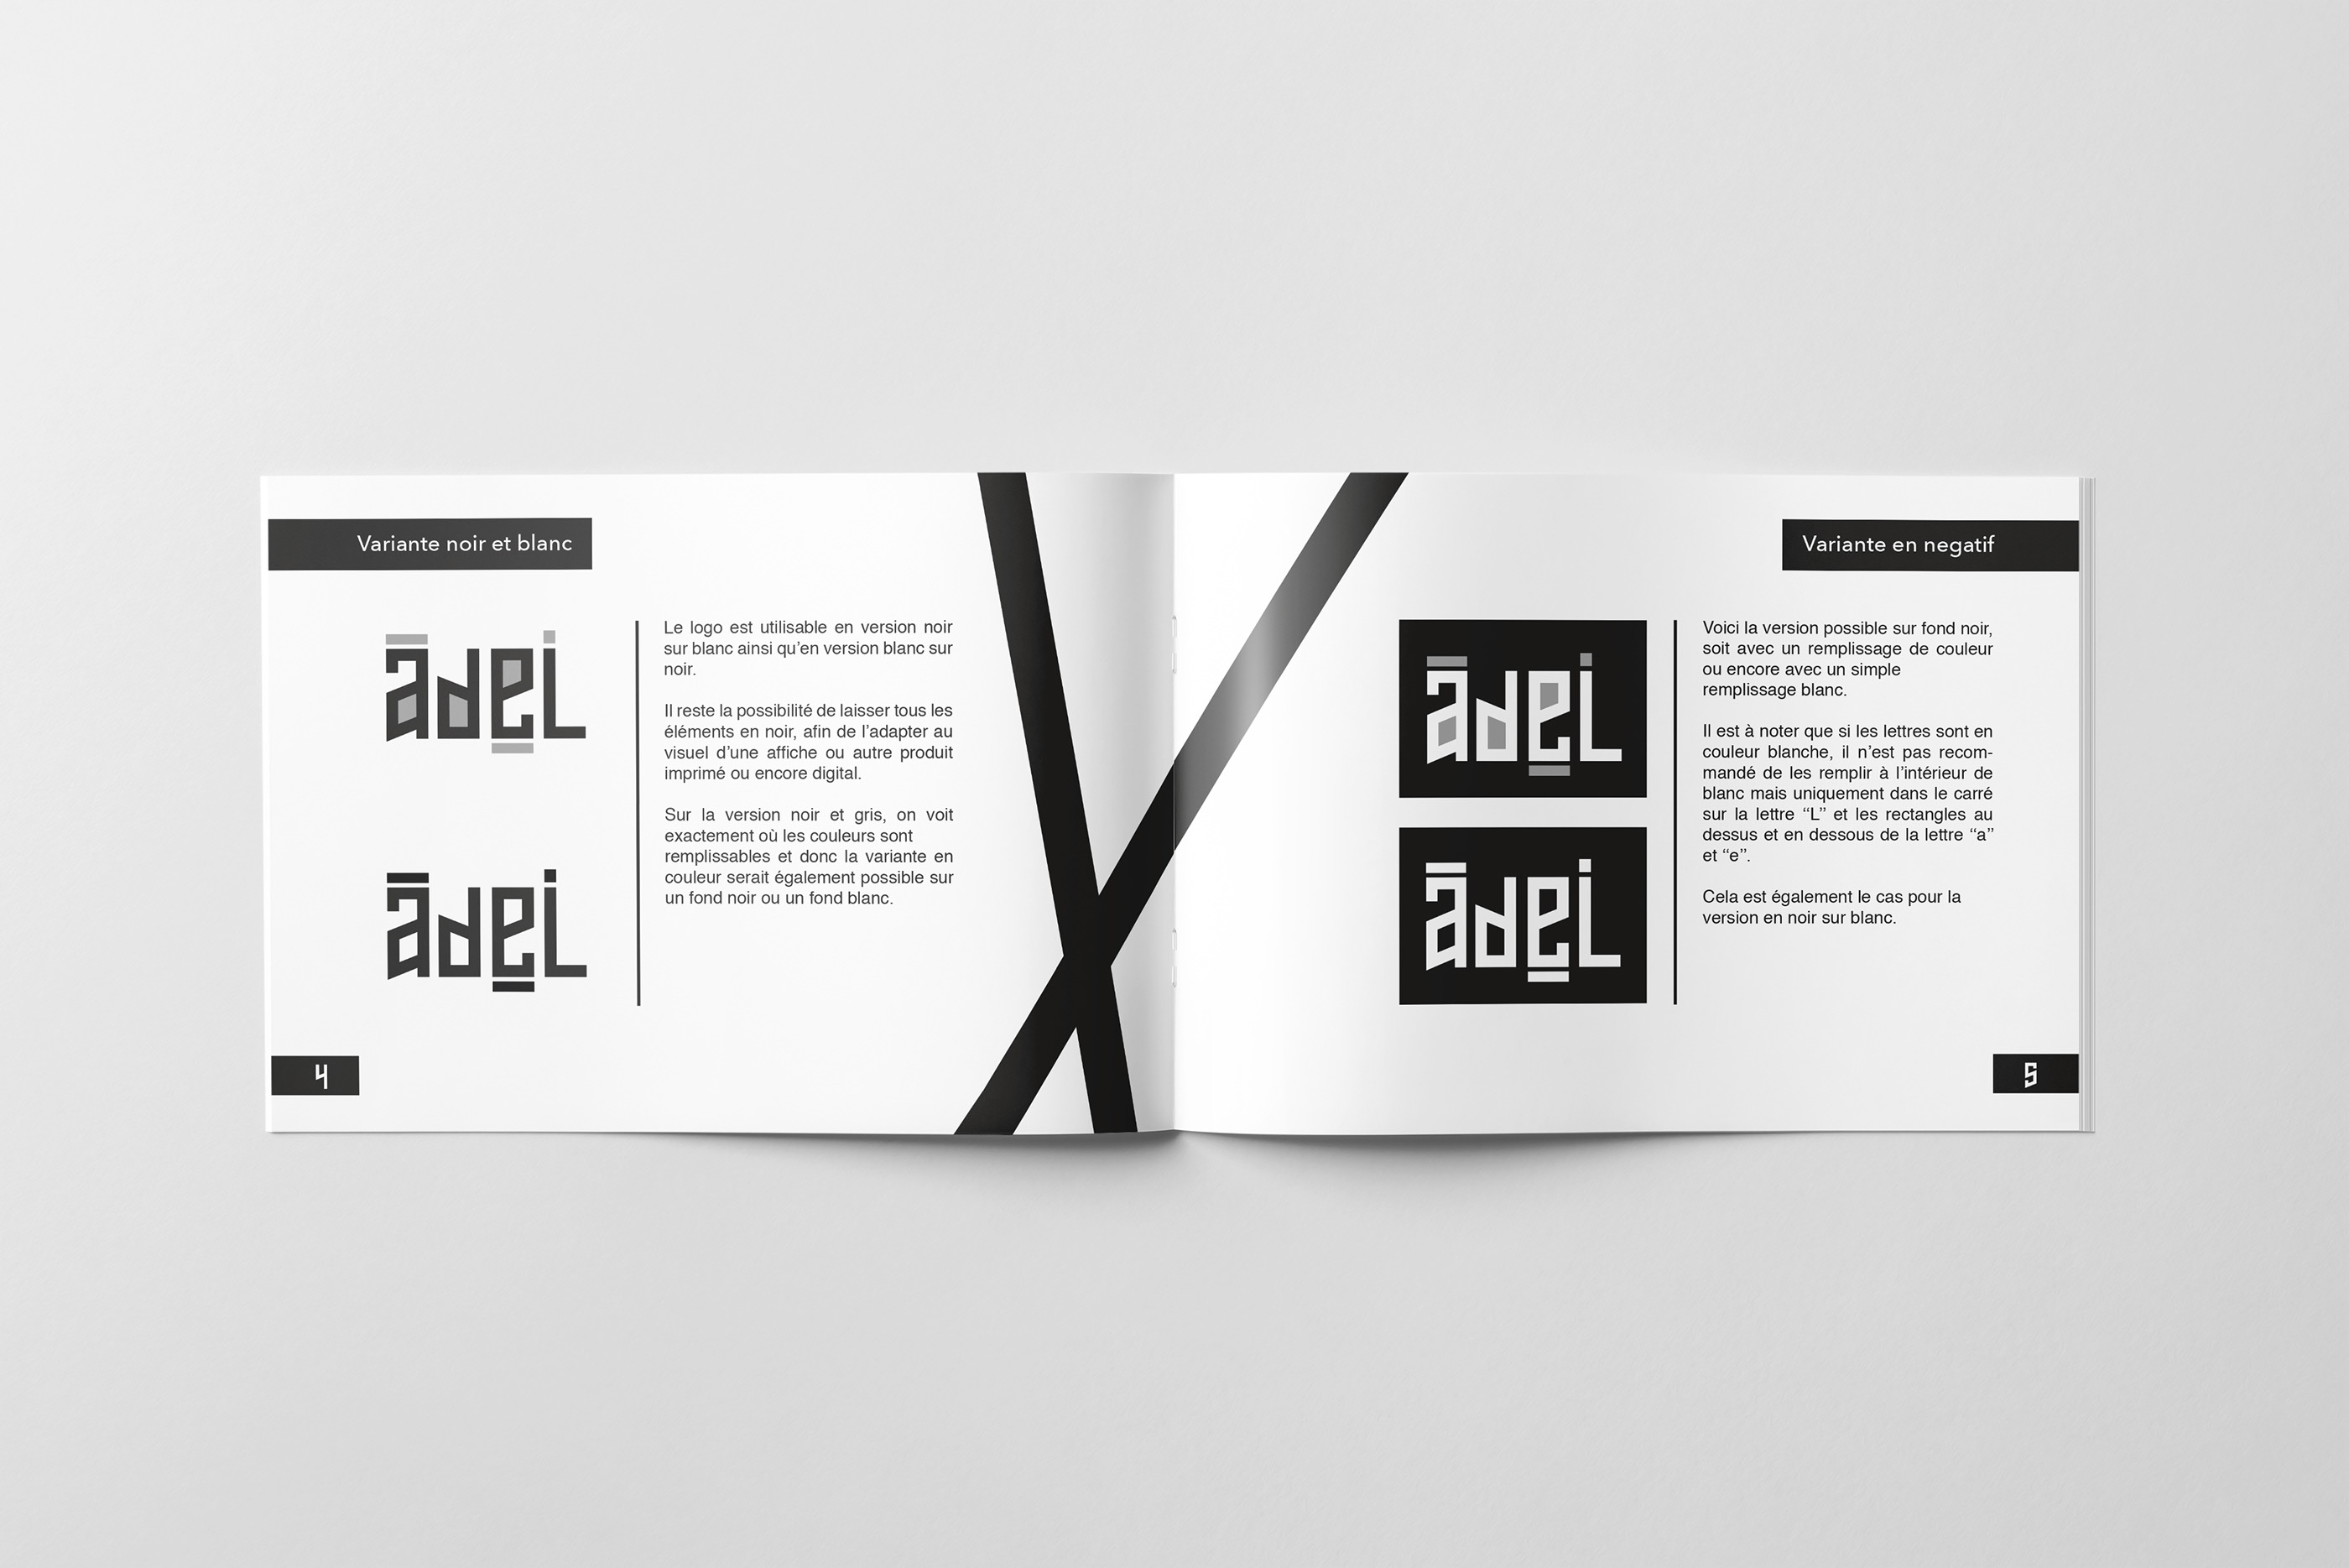 Affiche Noir Et Blanc Avec Couleur art and design evolution luxembourg - modular logo on behance